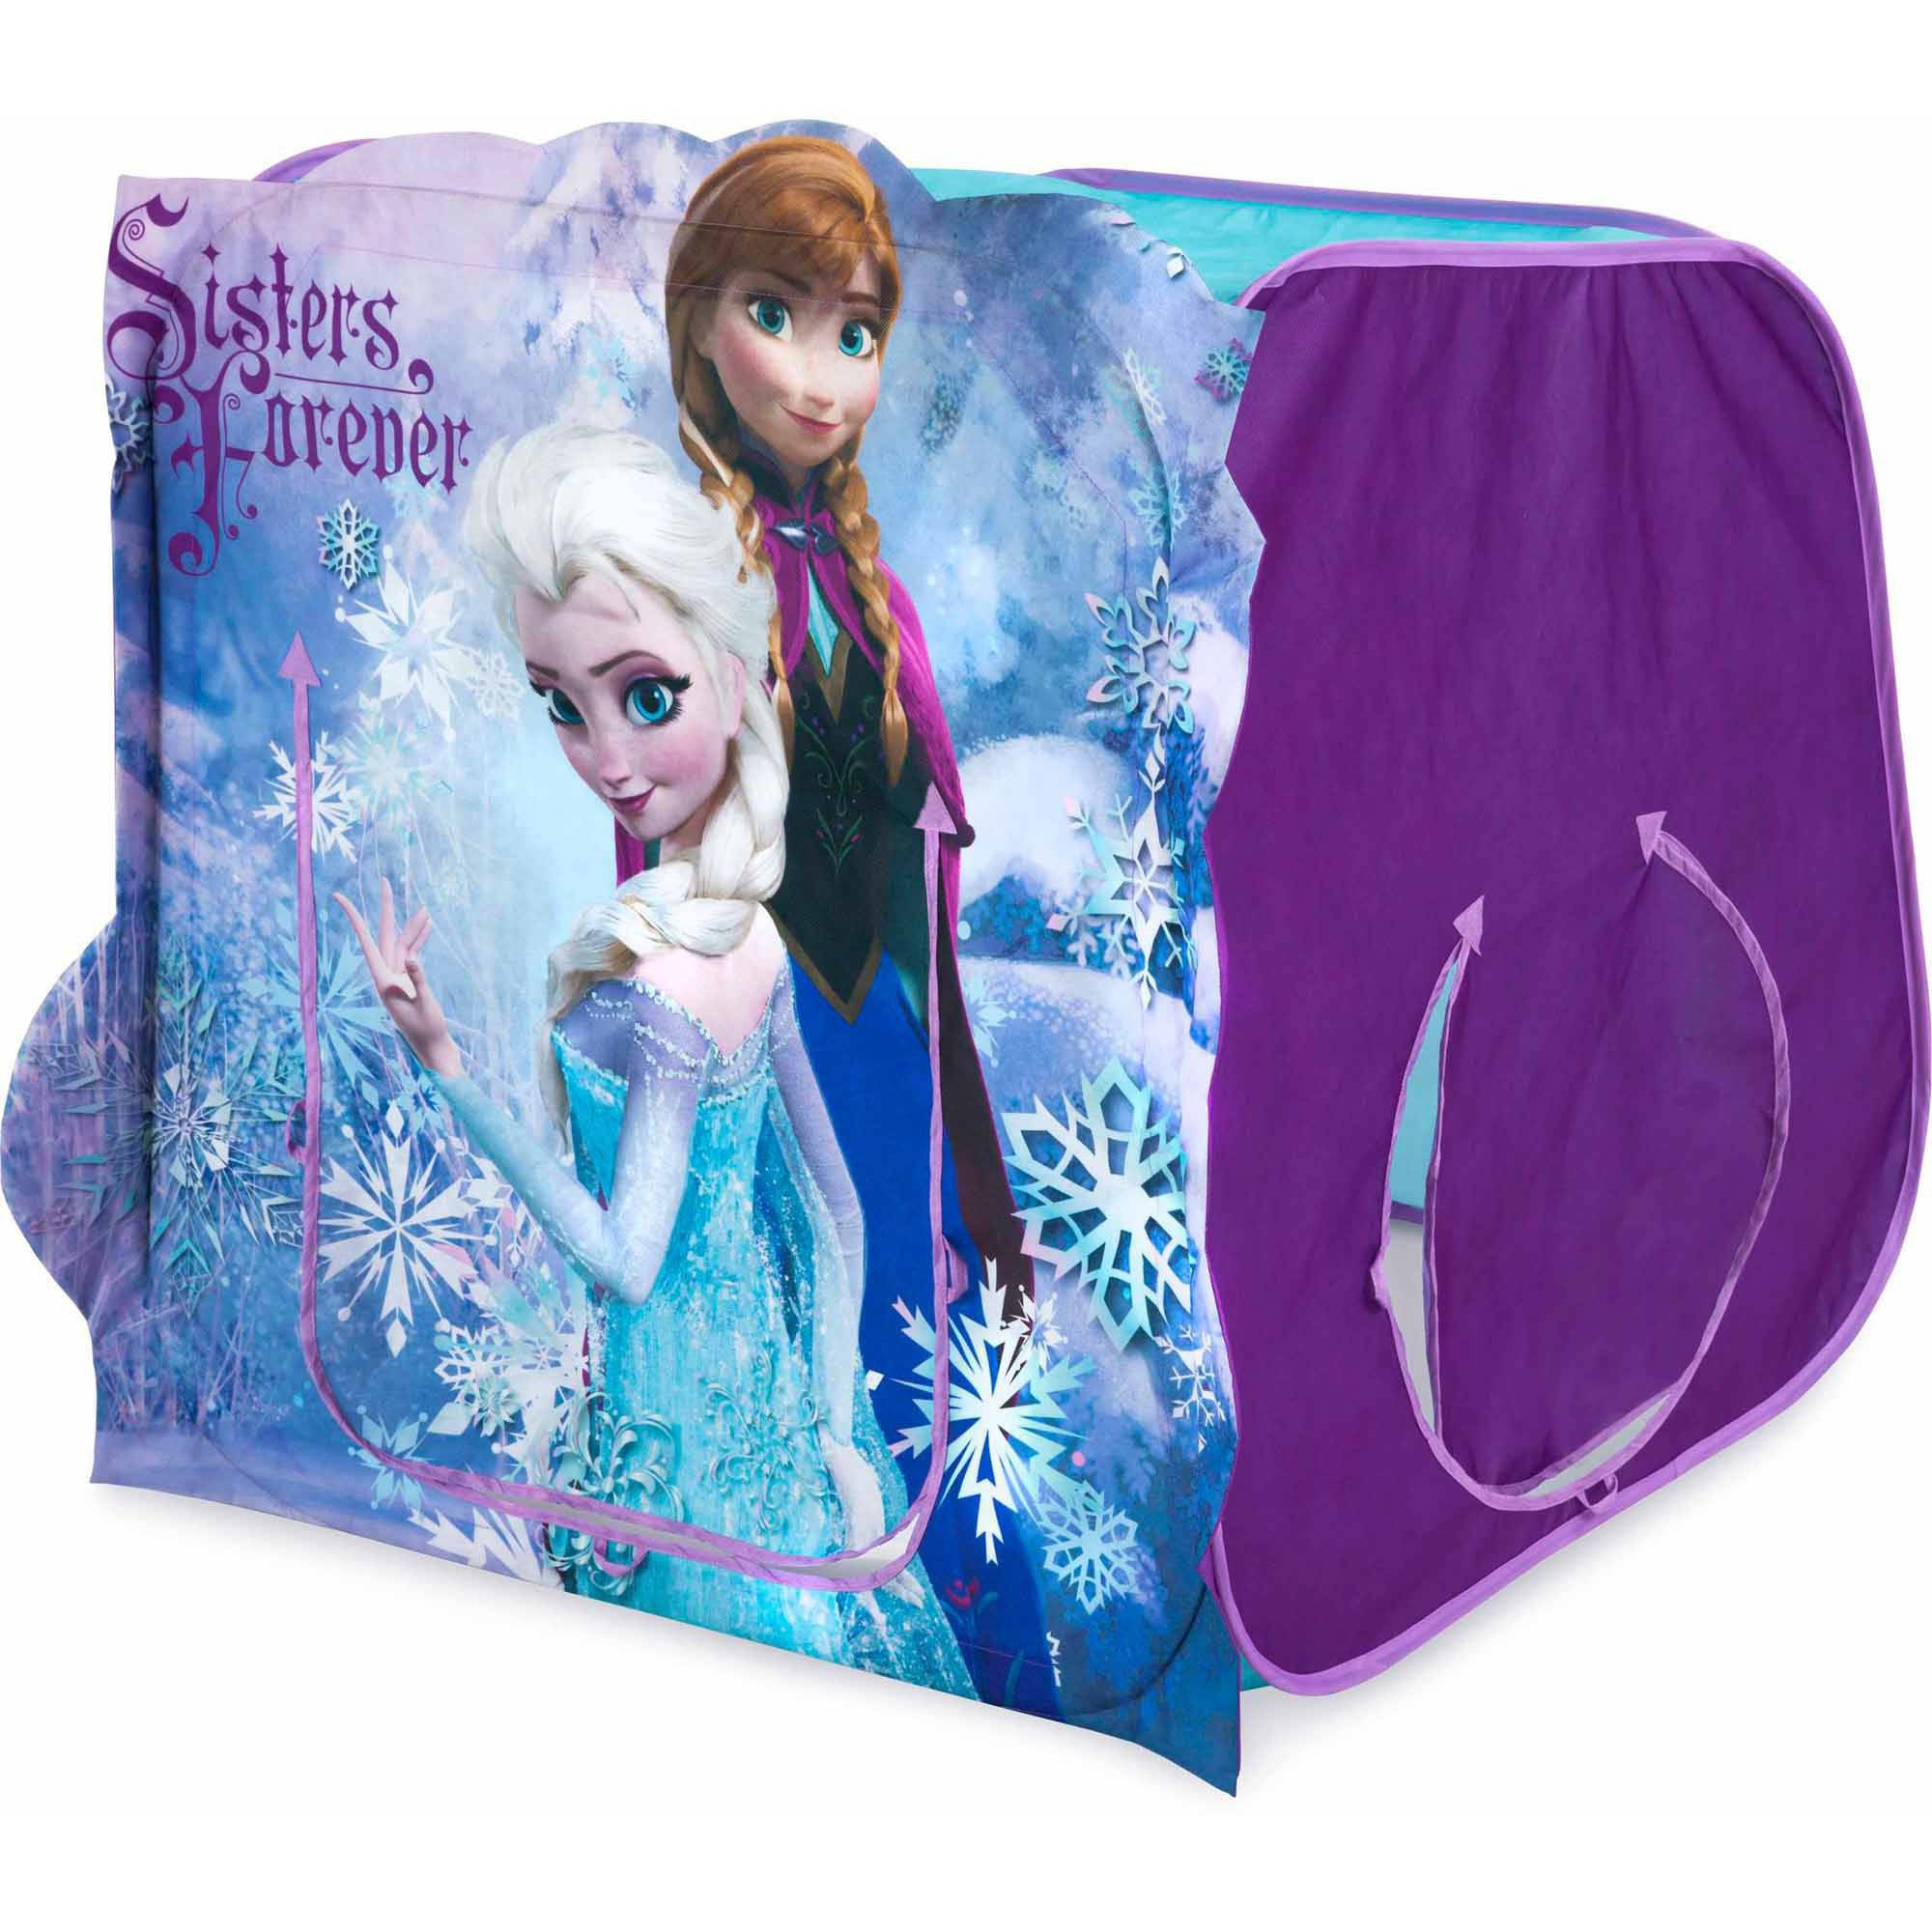 Playhut Disney Frozen Hide N Play